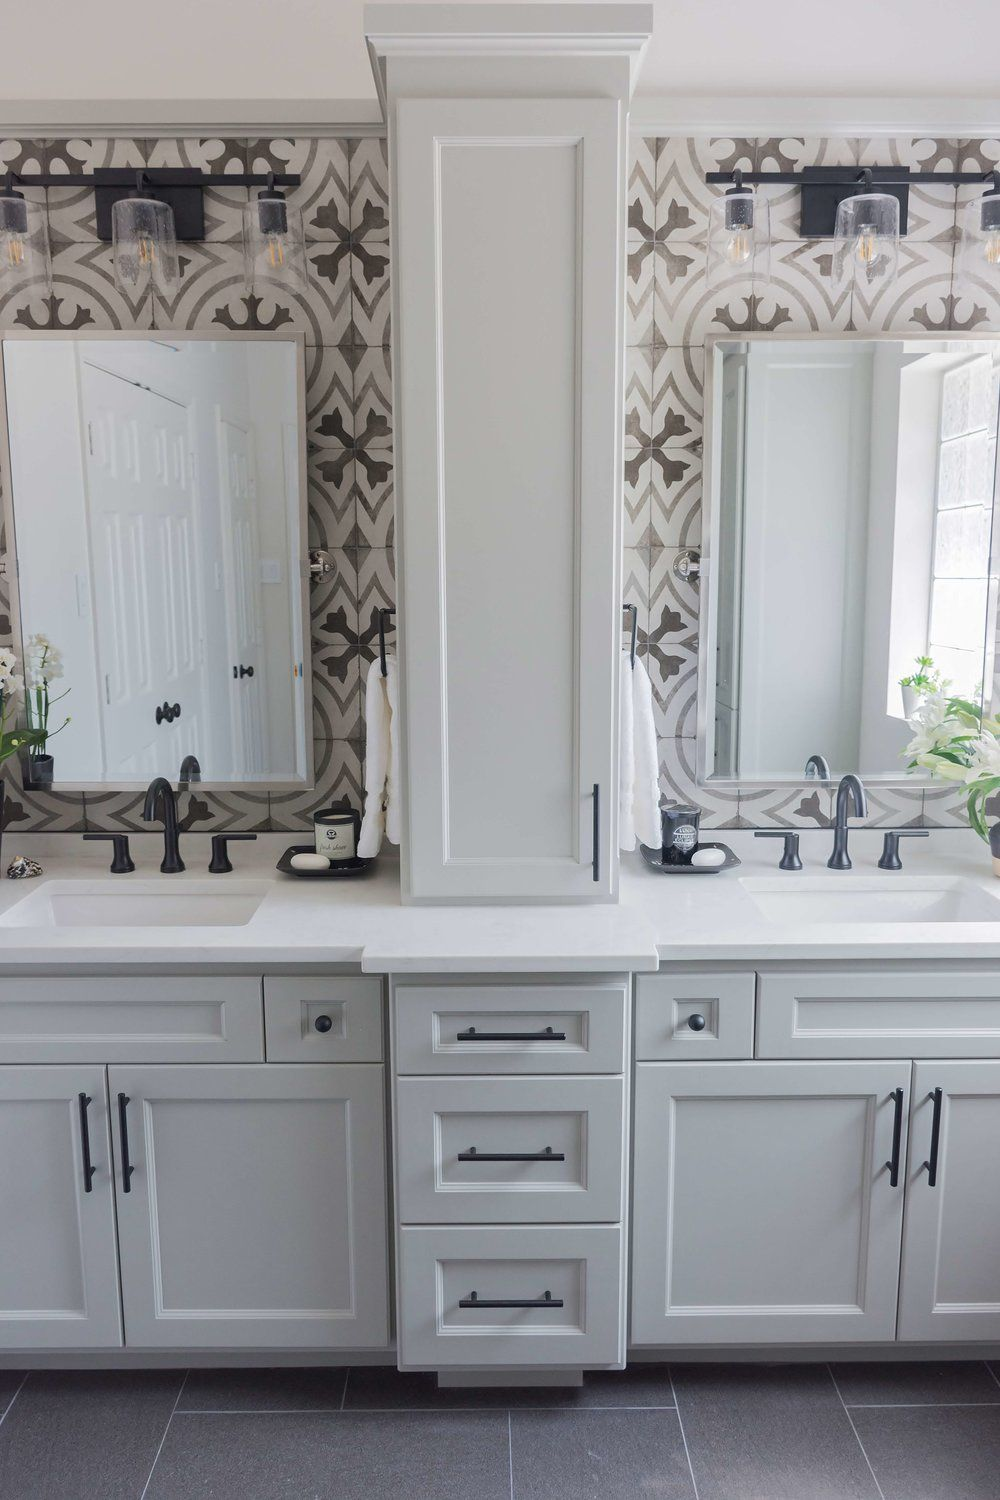 BEFORE AND AFTER: A Dated, Builder Bathroom Becomes An Eye-Catching, Modern Retreat — DESIGNED